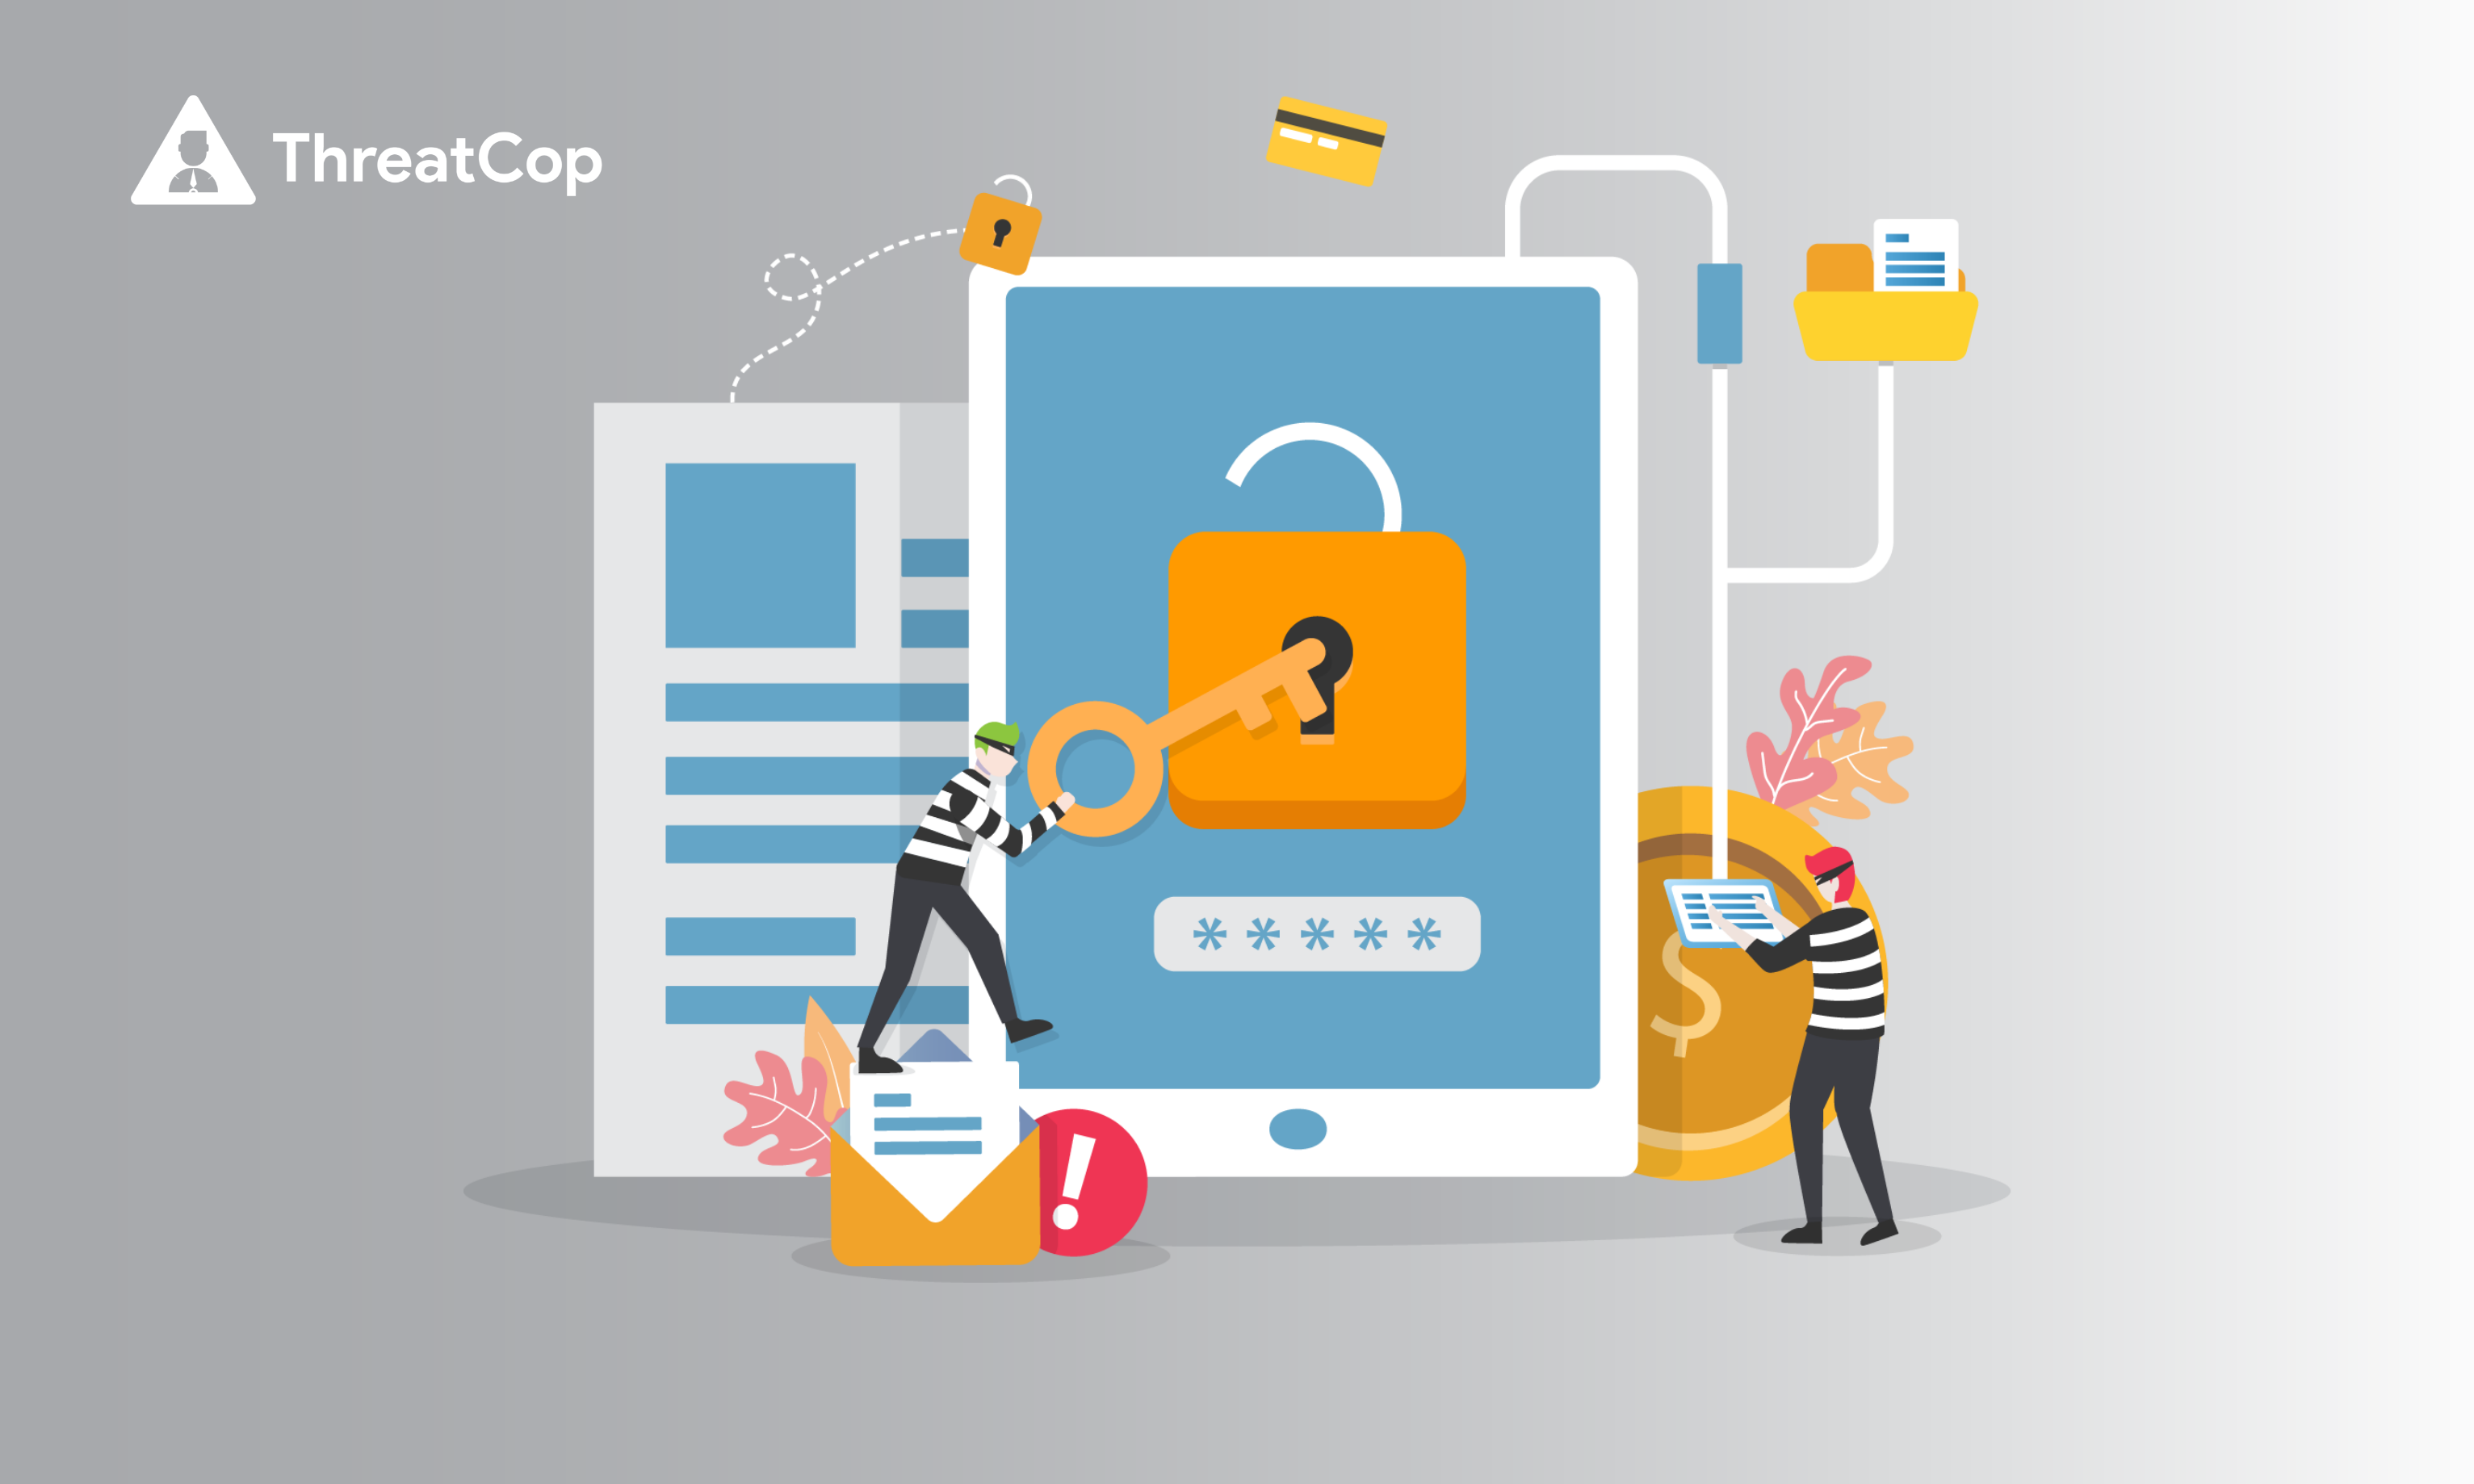 ThreatCop for prevention against vishing attack